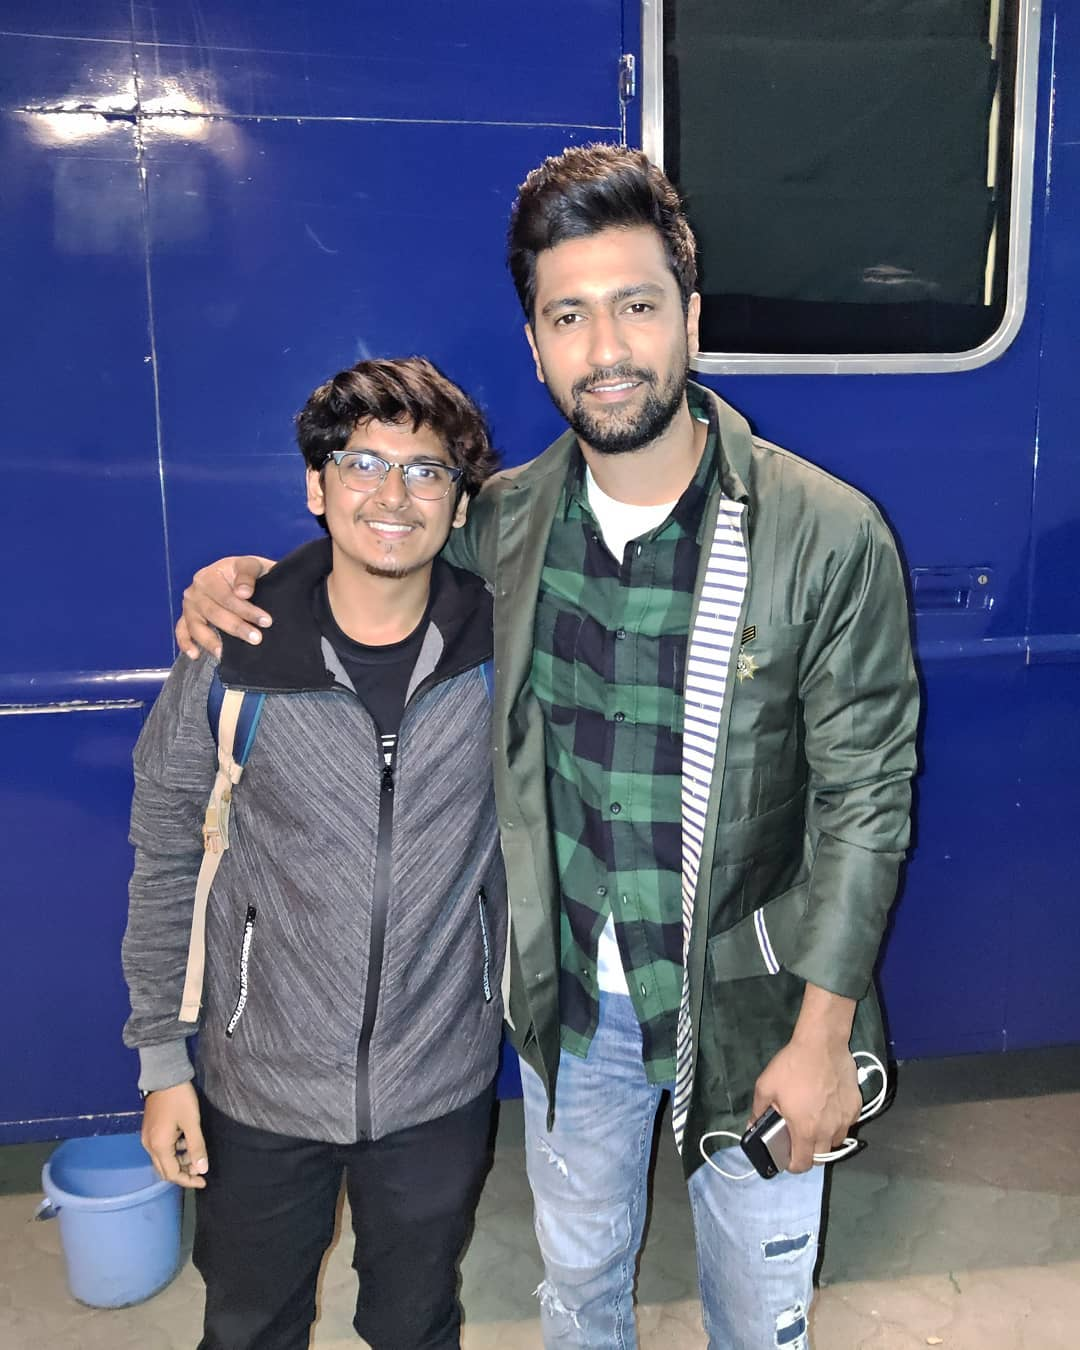 Mortal With Vicky Kaushal